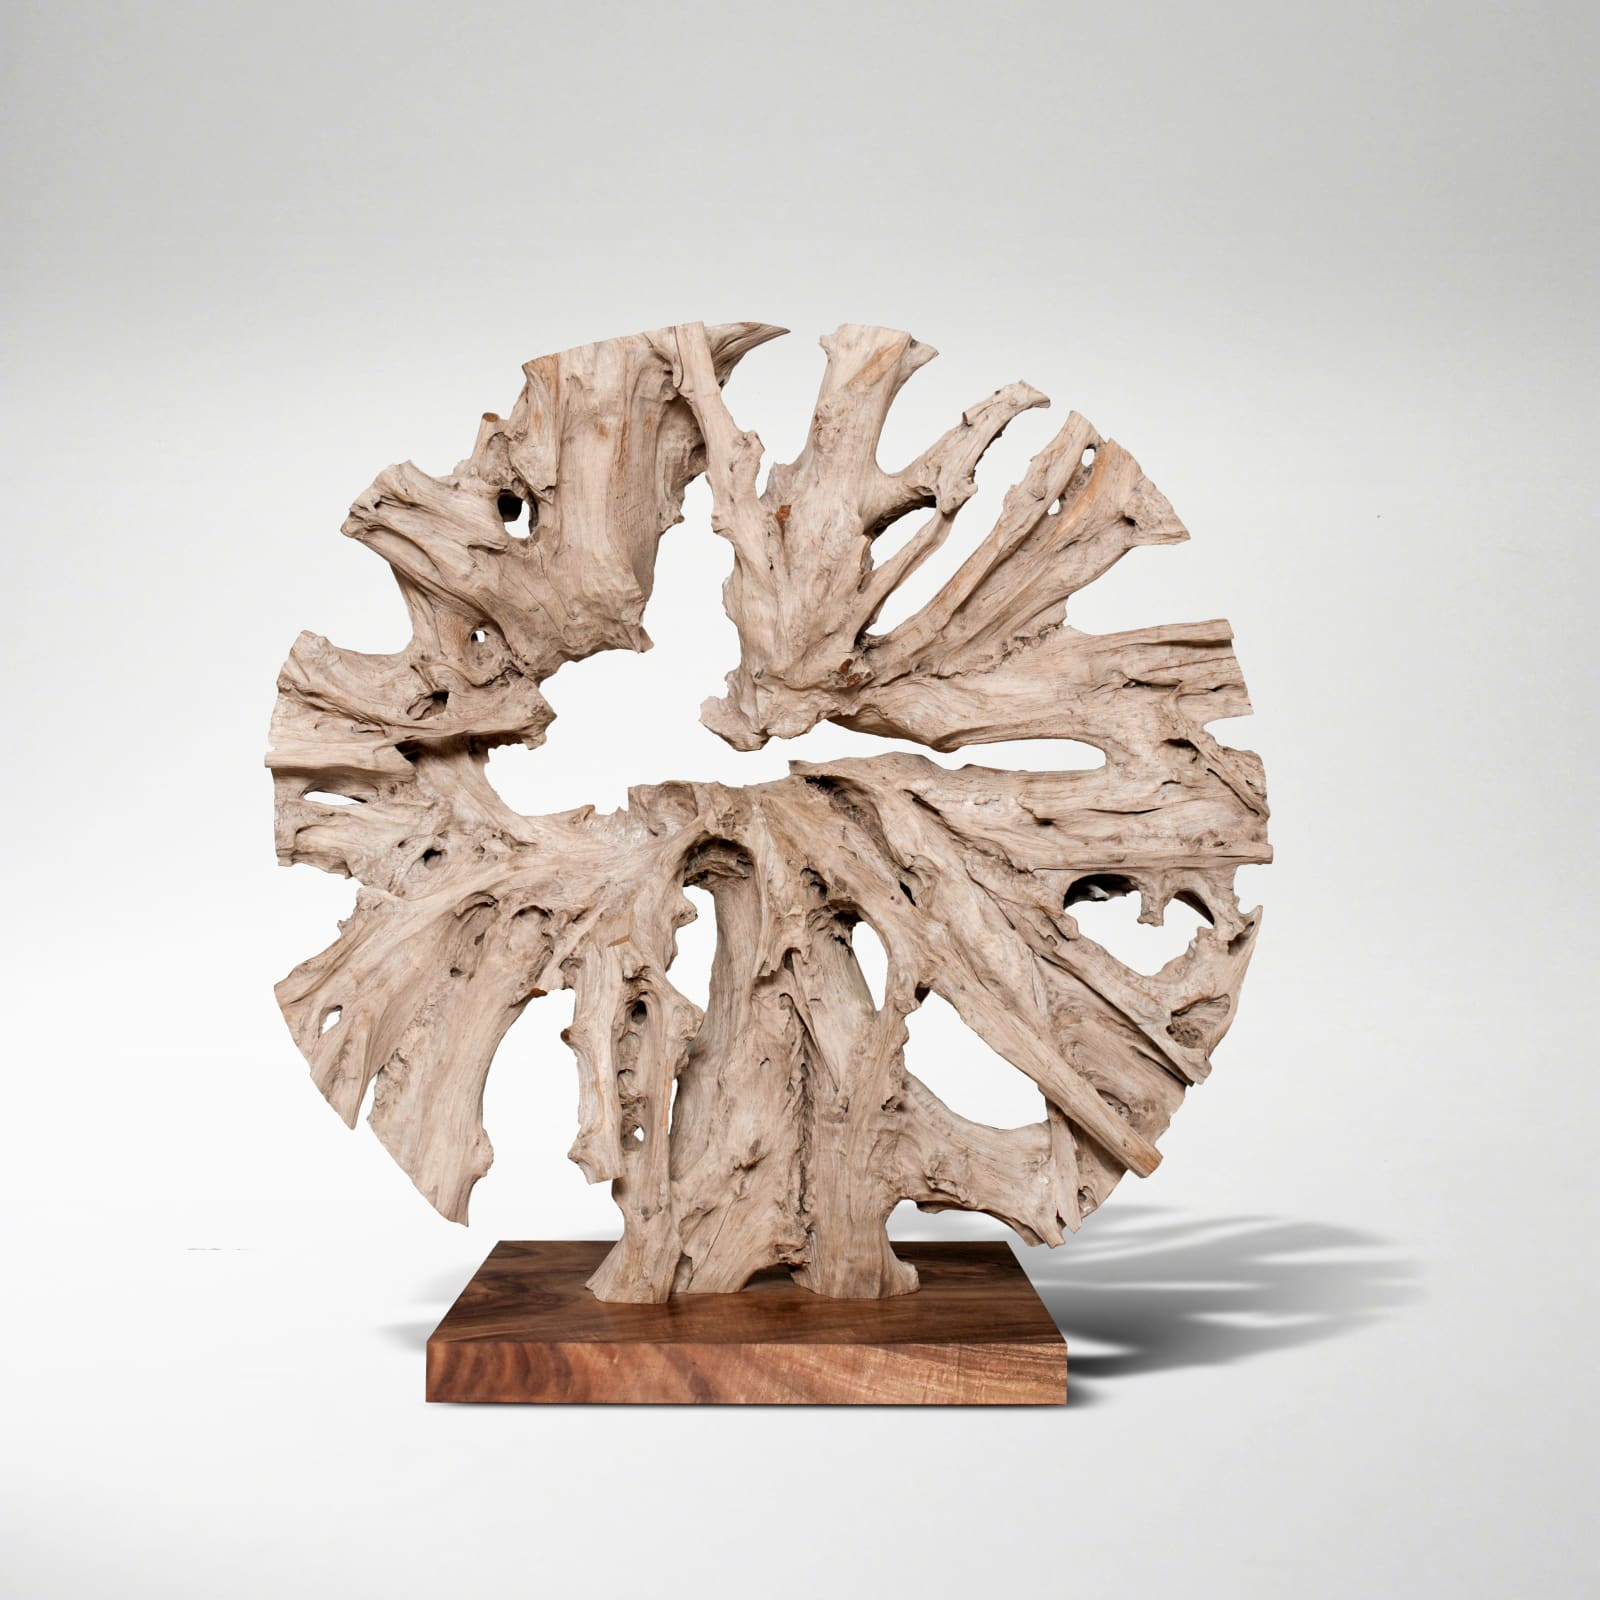 Monumental Circular Sculpture, 2018  Signed JAS  Teak root on separate plinth